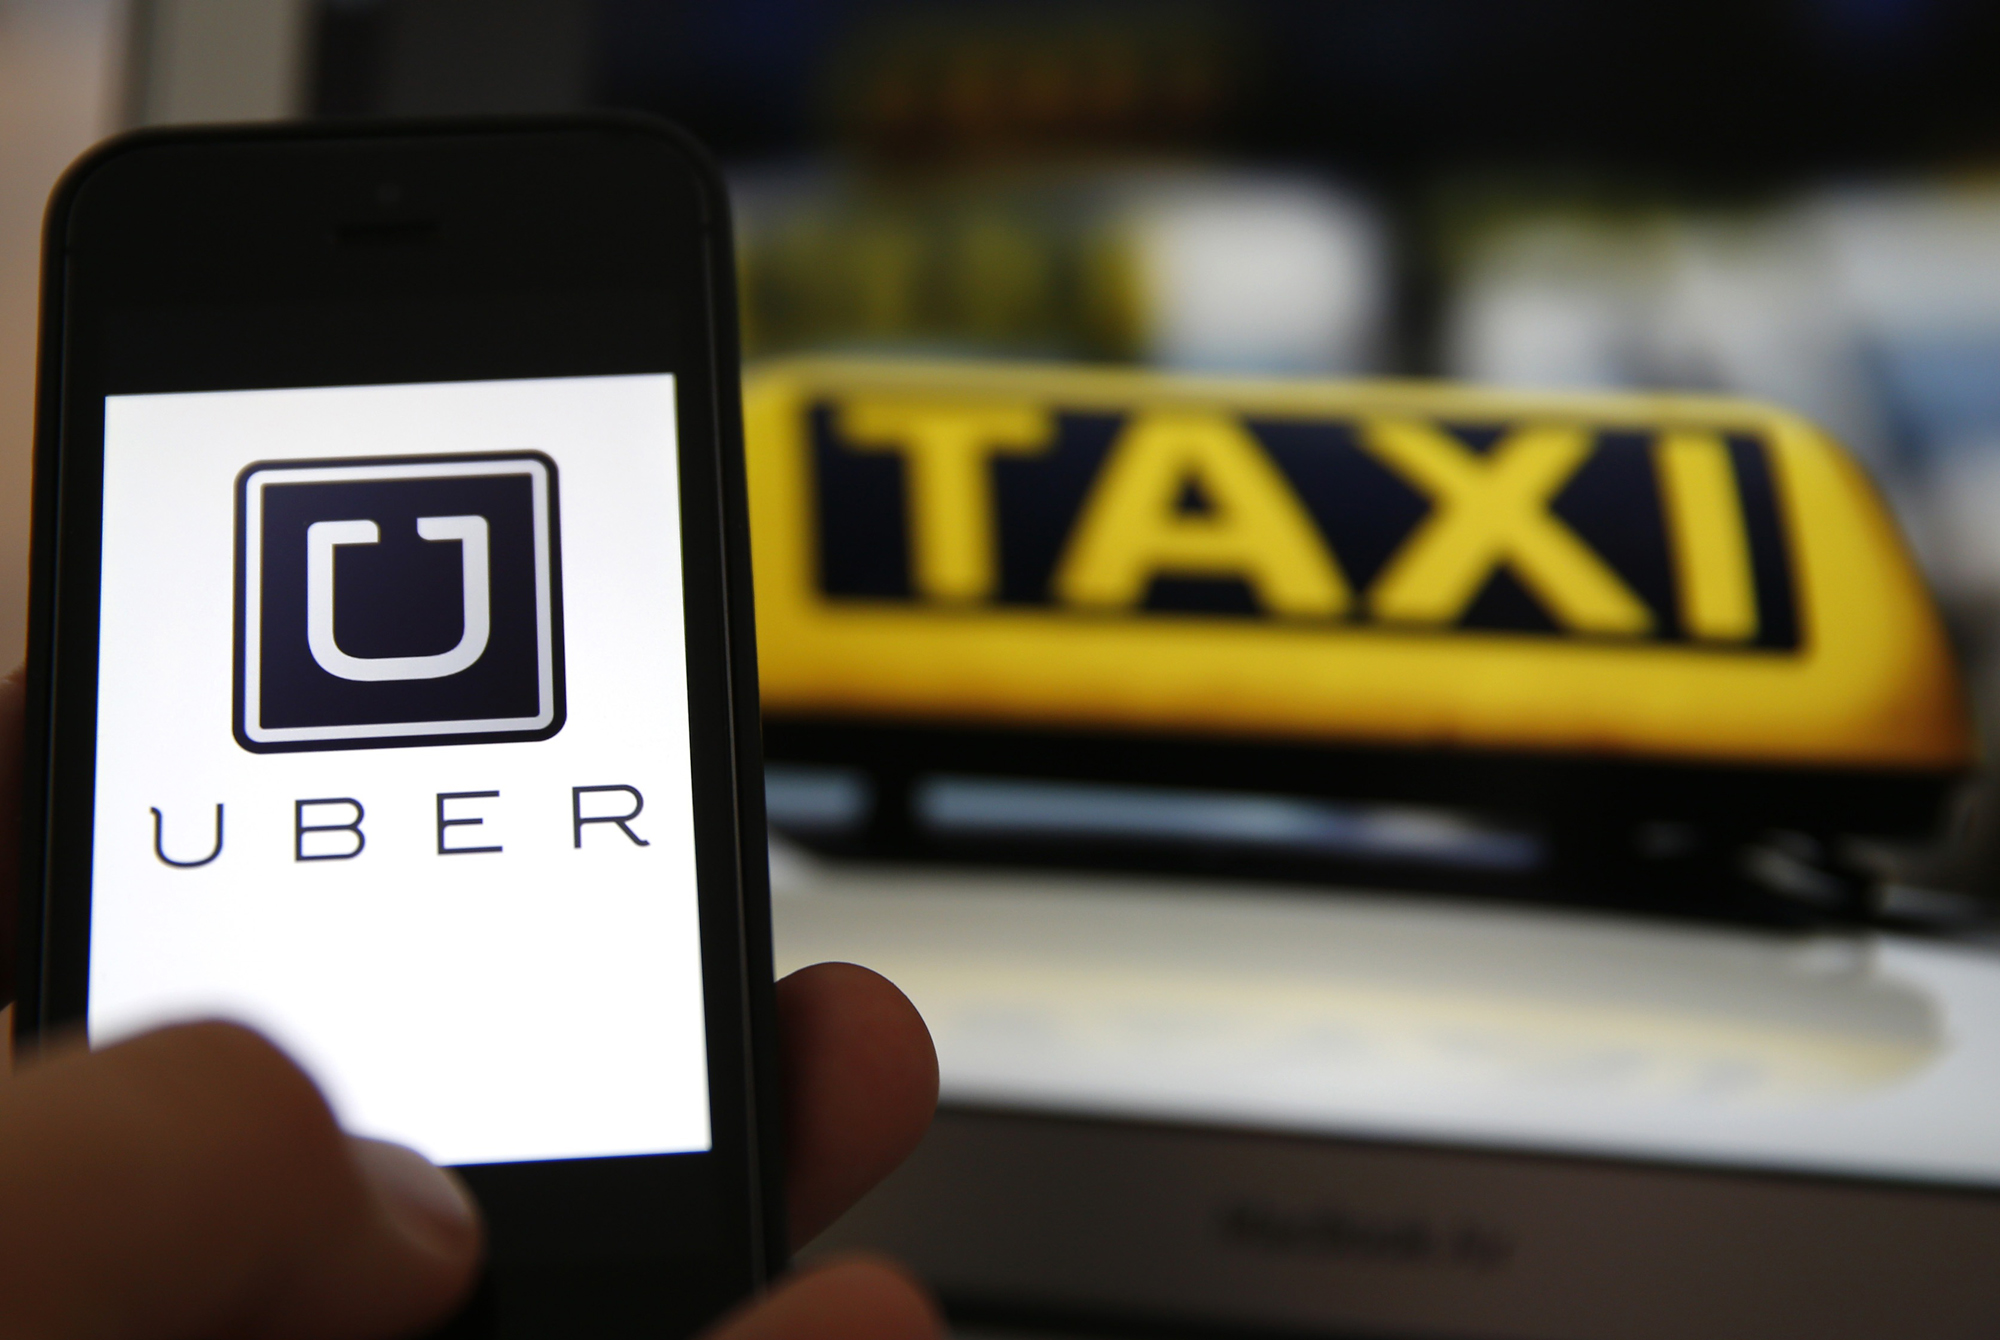 Uber app faces legal hurdles in many countries